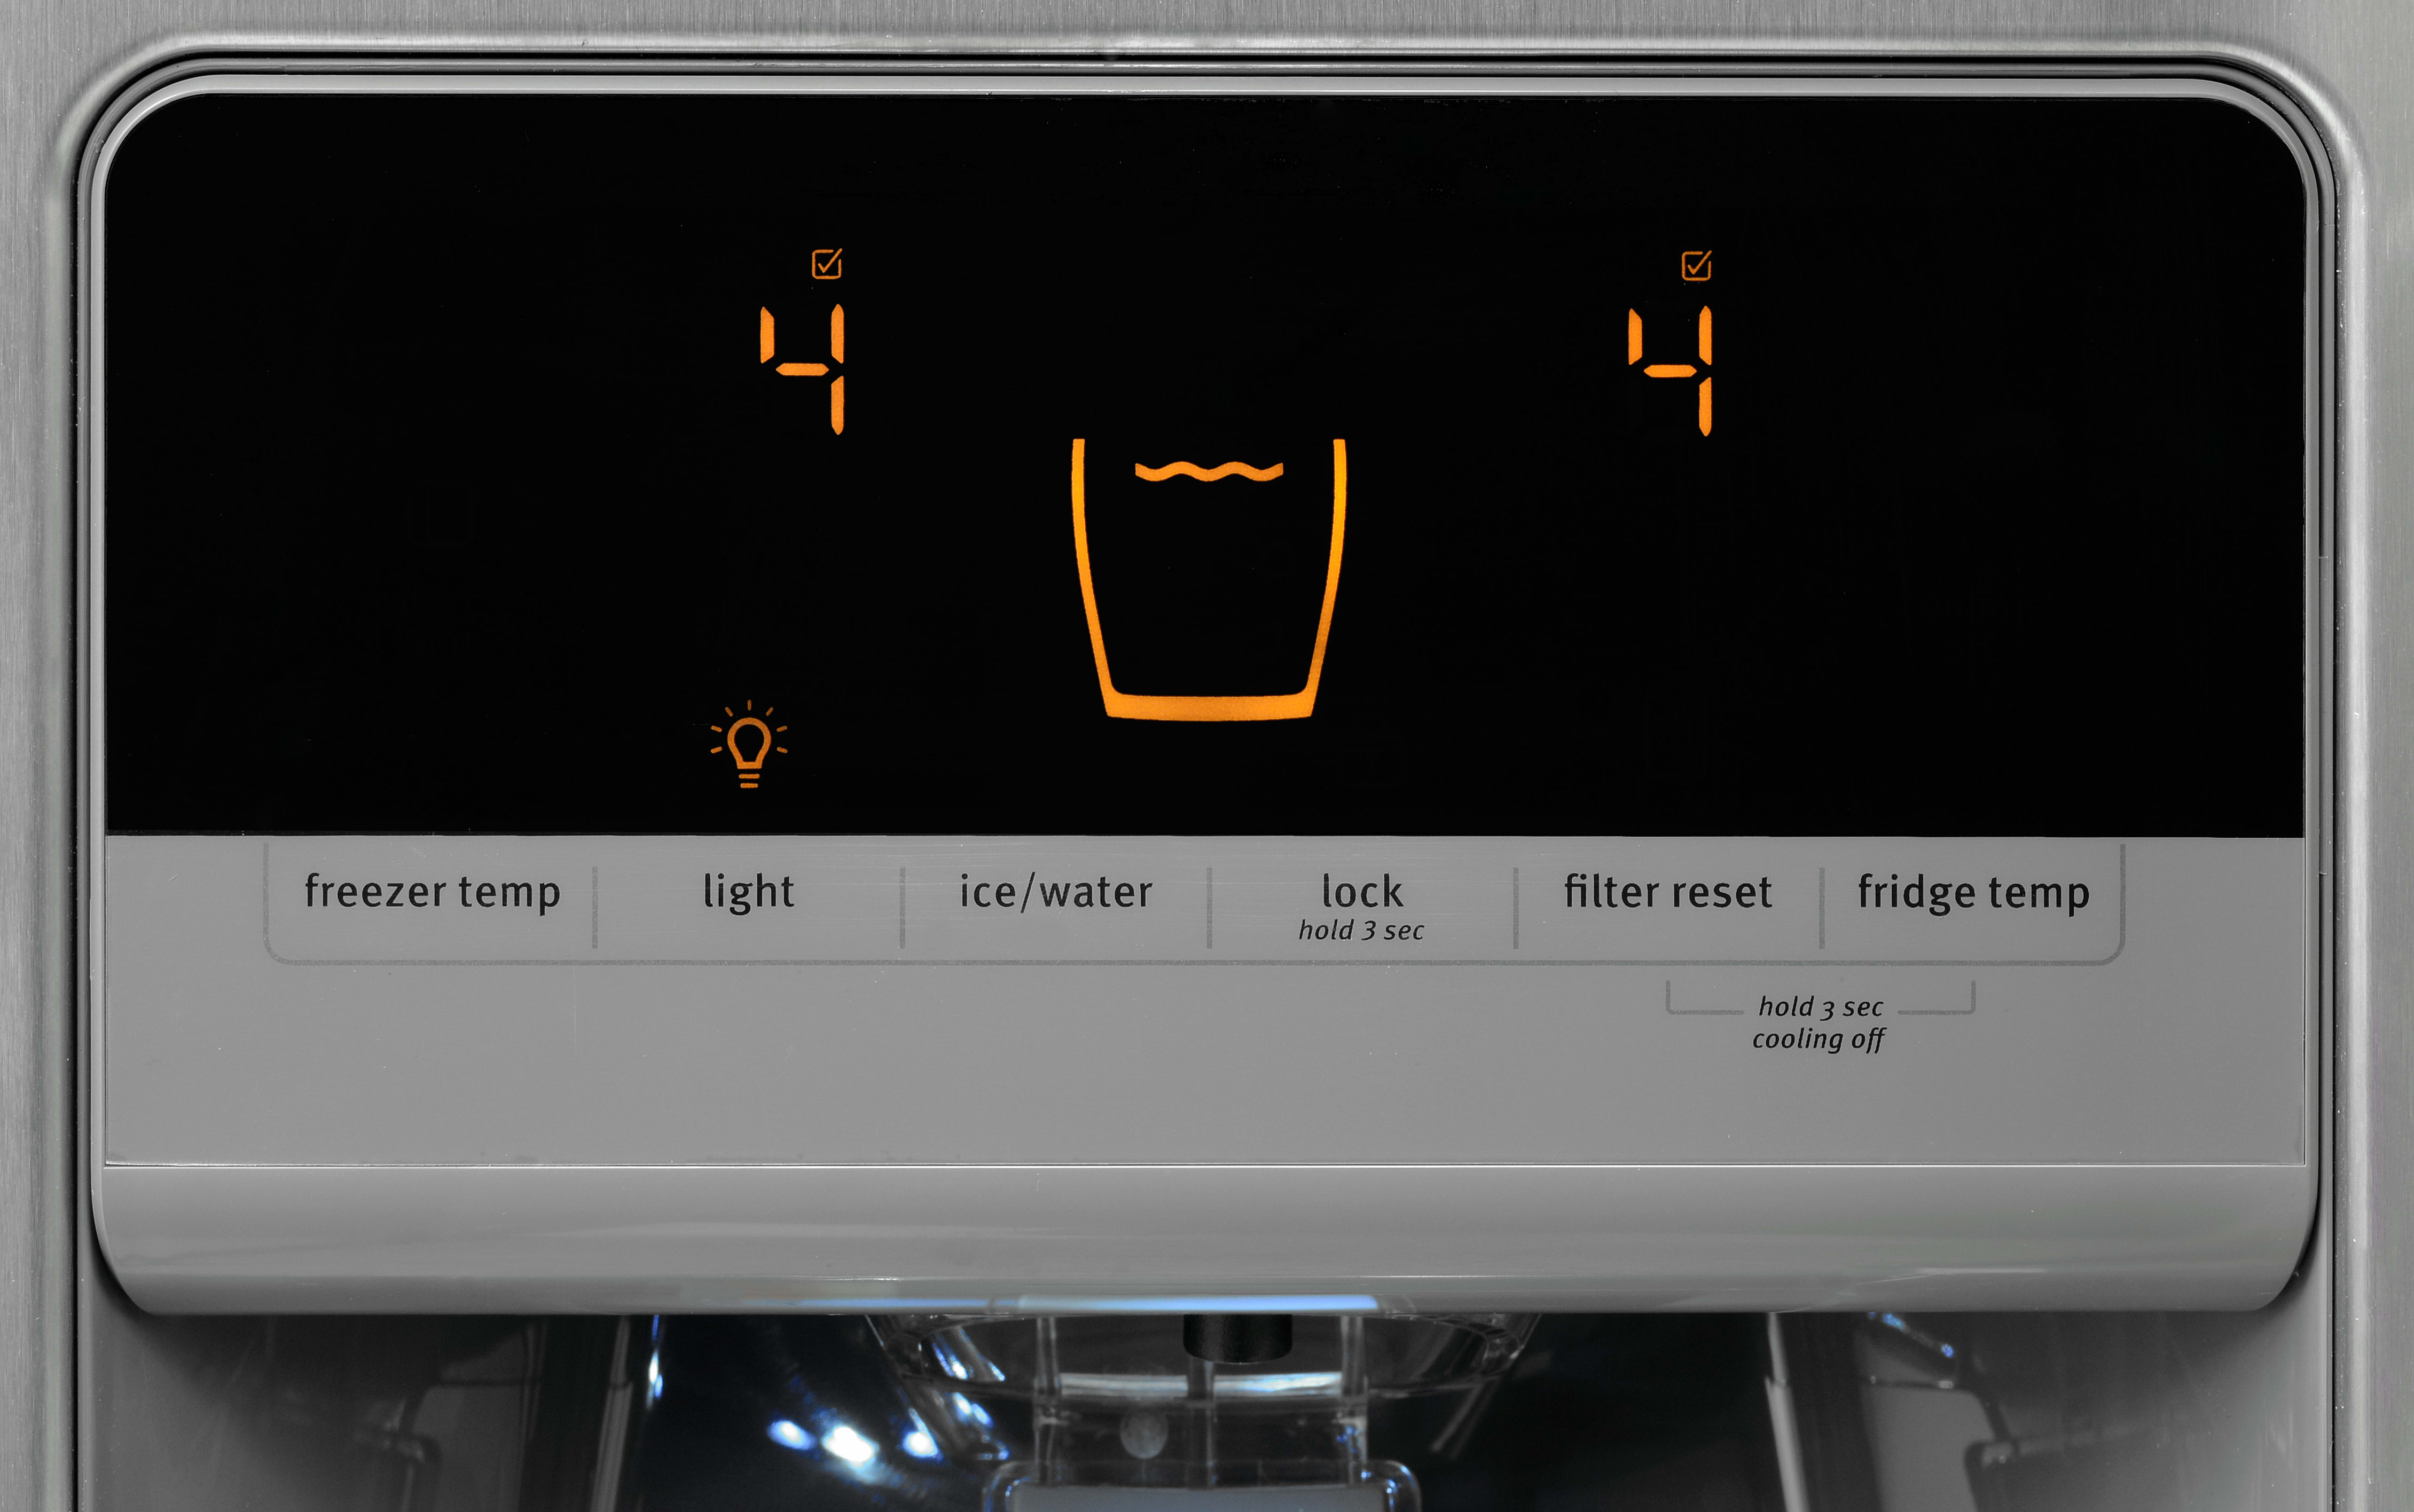 The Maytag MSF21D4MDM's controls certainly look sleek, but are less precise than we'd like.